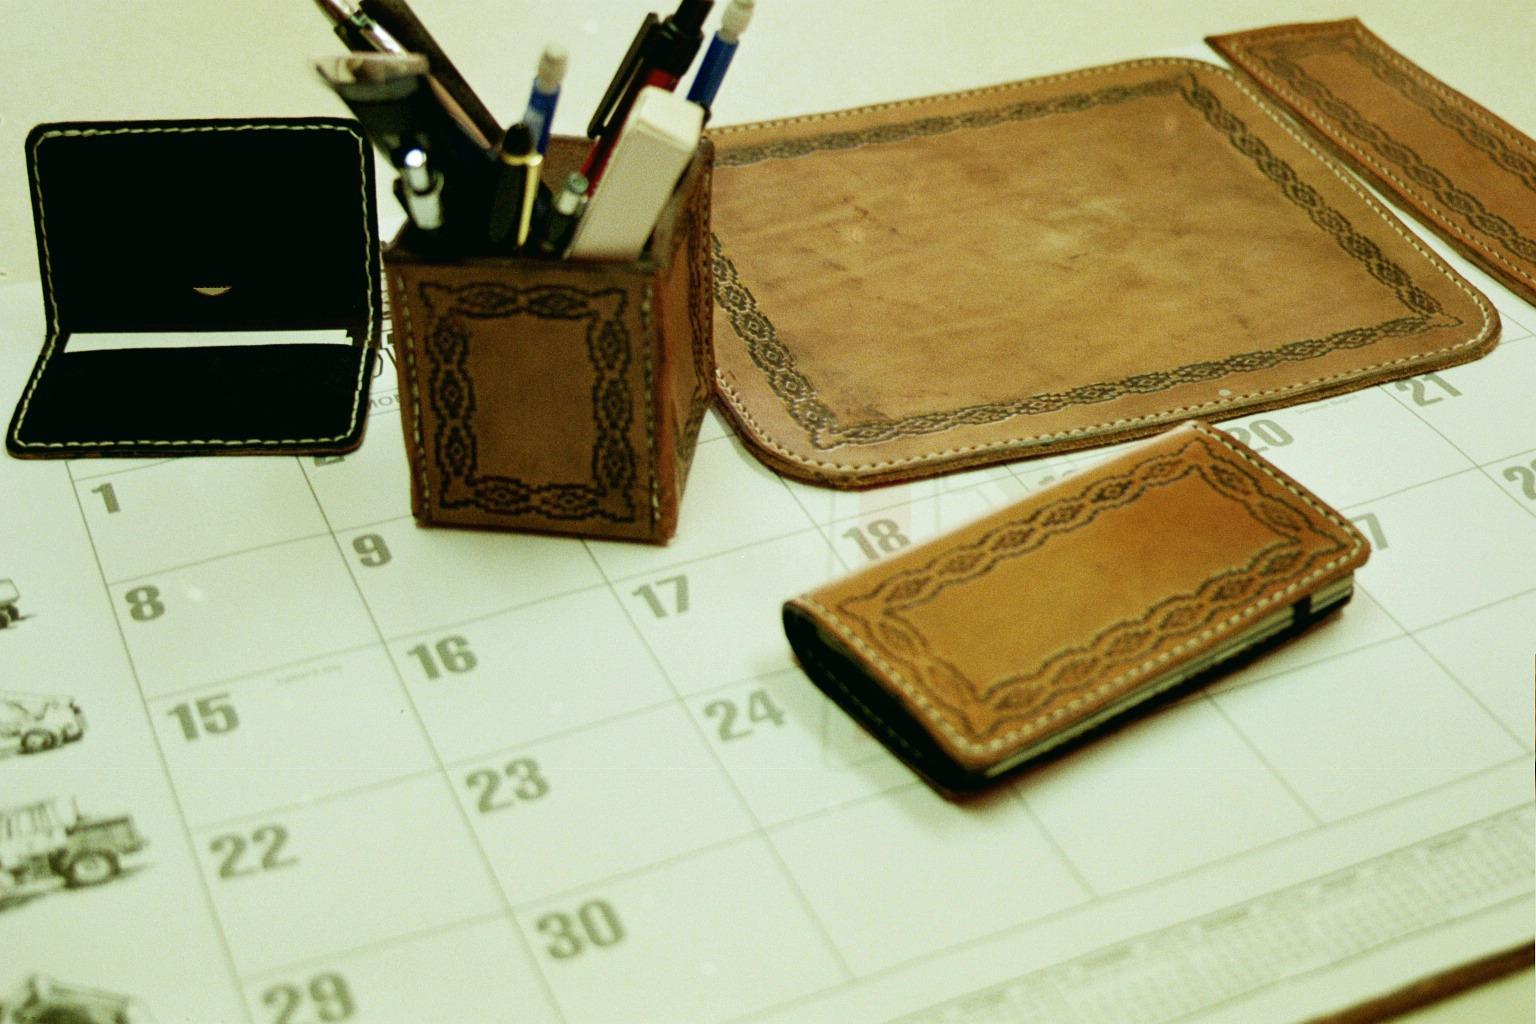 The Deluxe Western Office Set Includes Basic Plus A Mouse Pad 8 3 4 X10 1 And Pen Pencil Cup Both Sets Can Be Tooled With